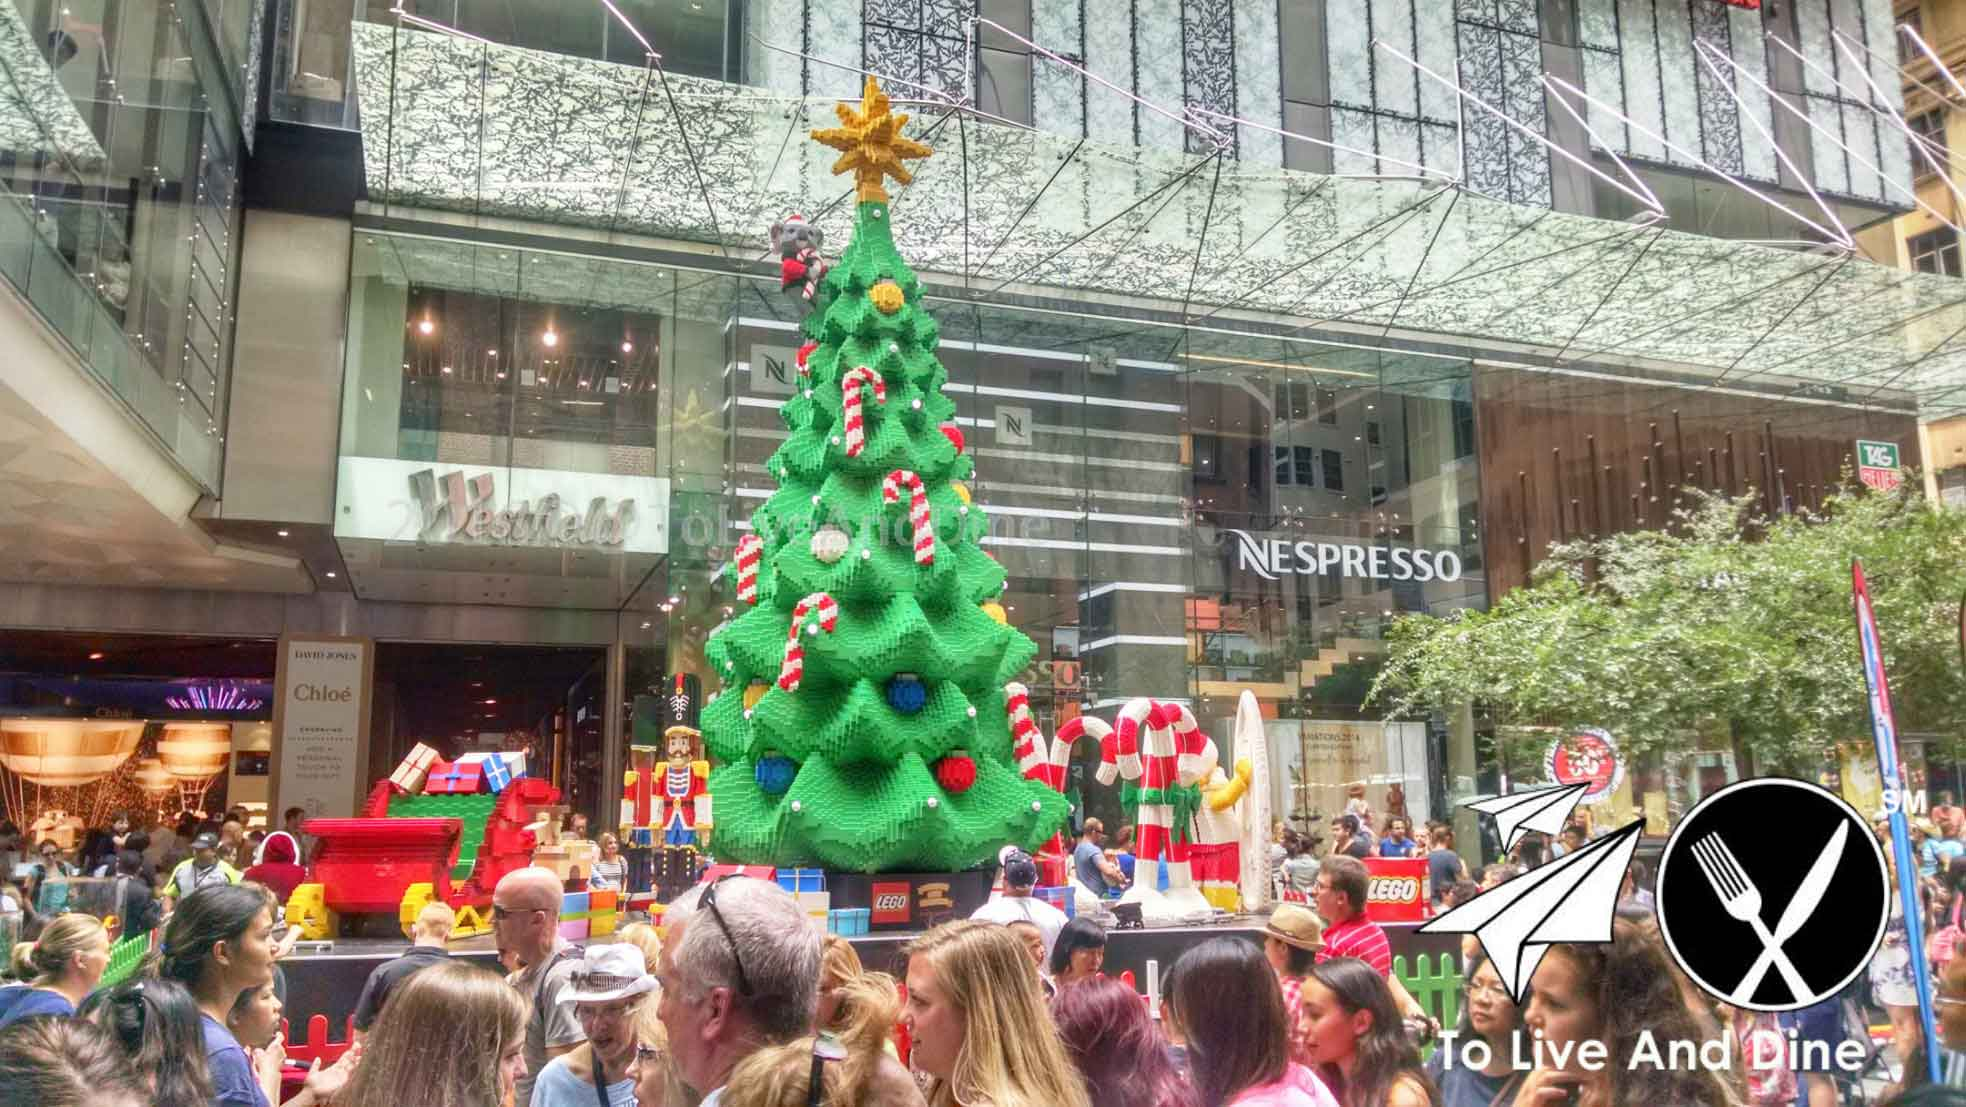 Lego Christmas Tree at Westfield Mall